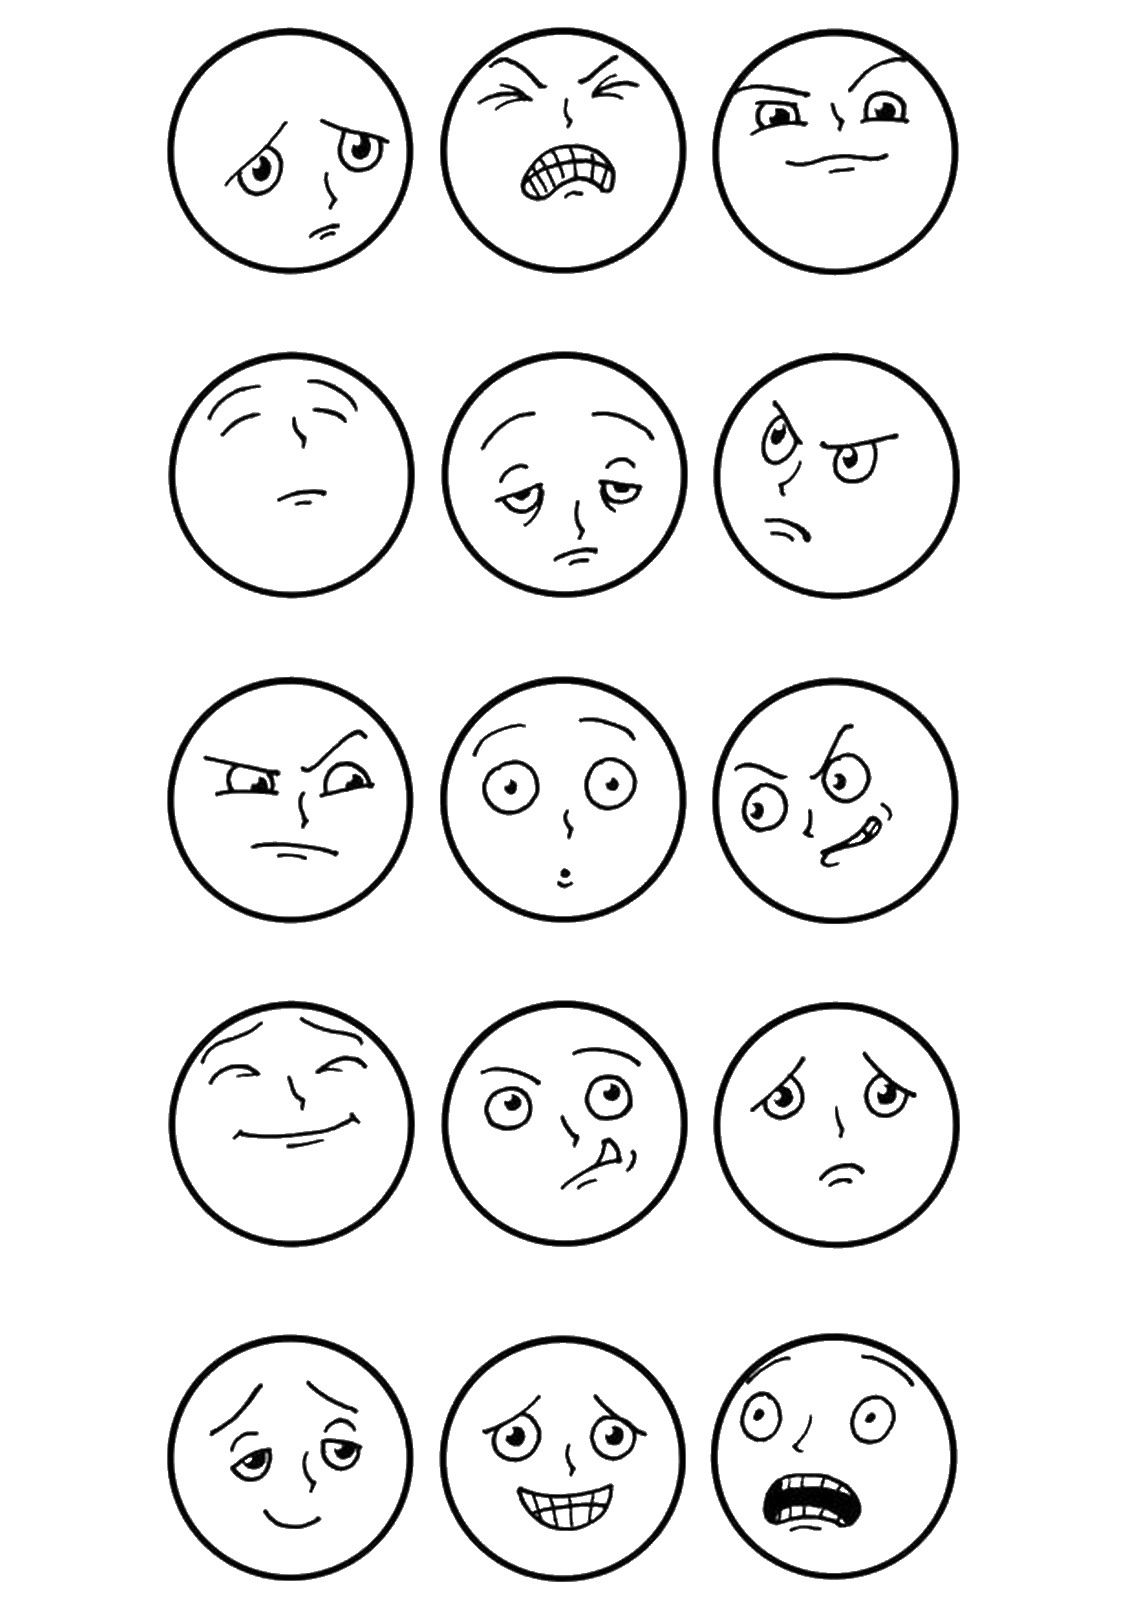 Top 20 Free Printable Emotions Coloring Pages Online | Coloring ...